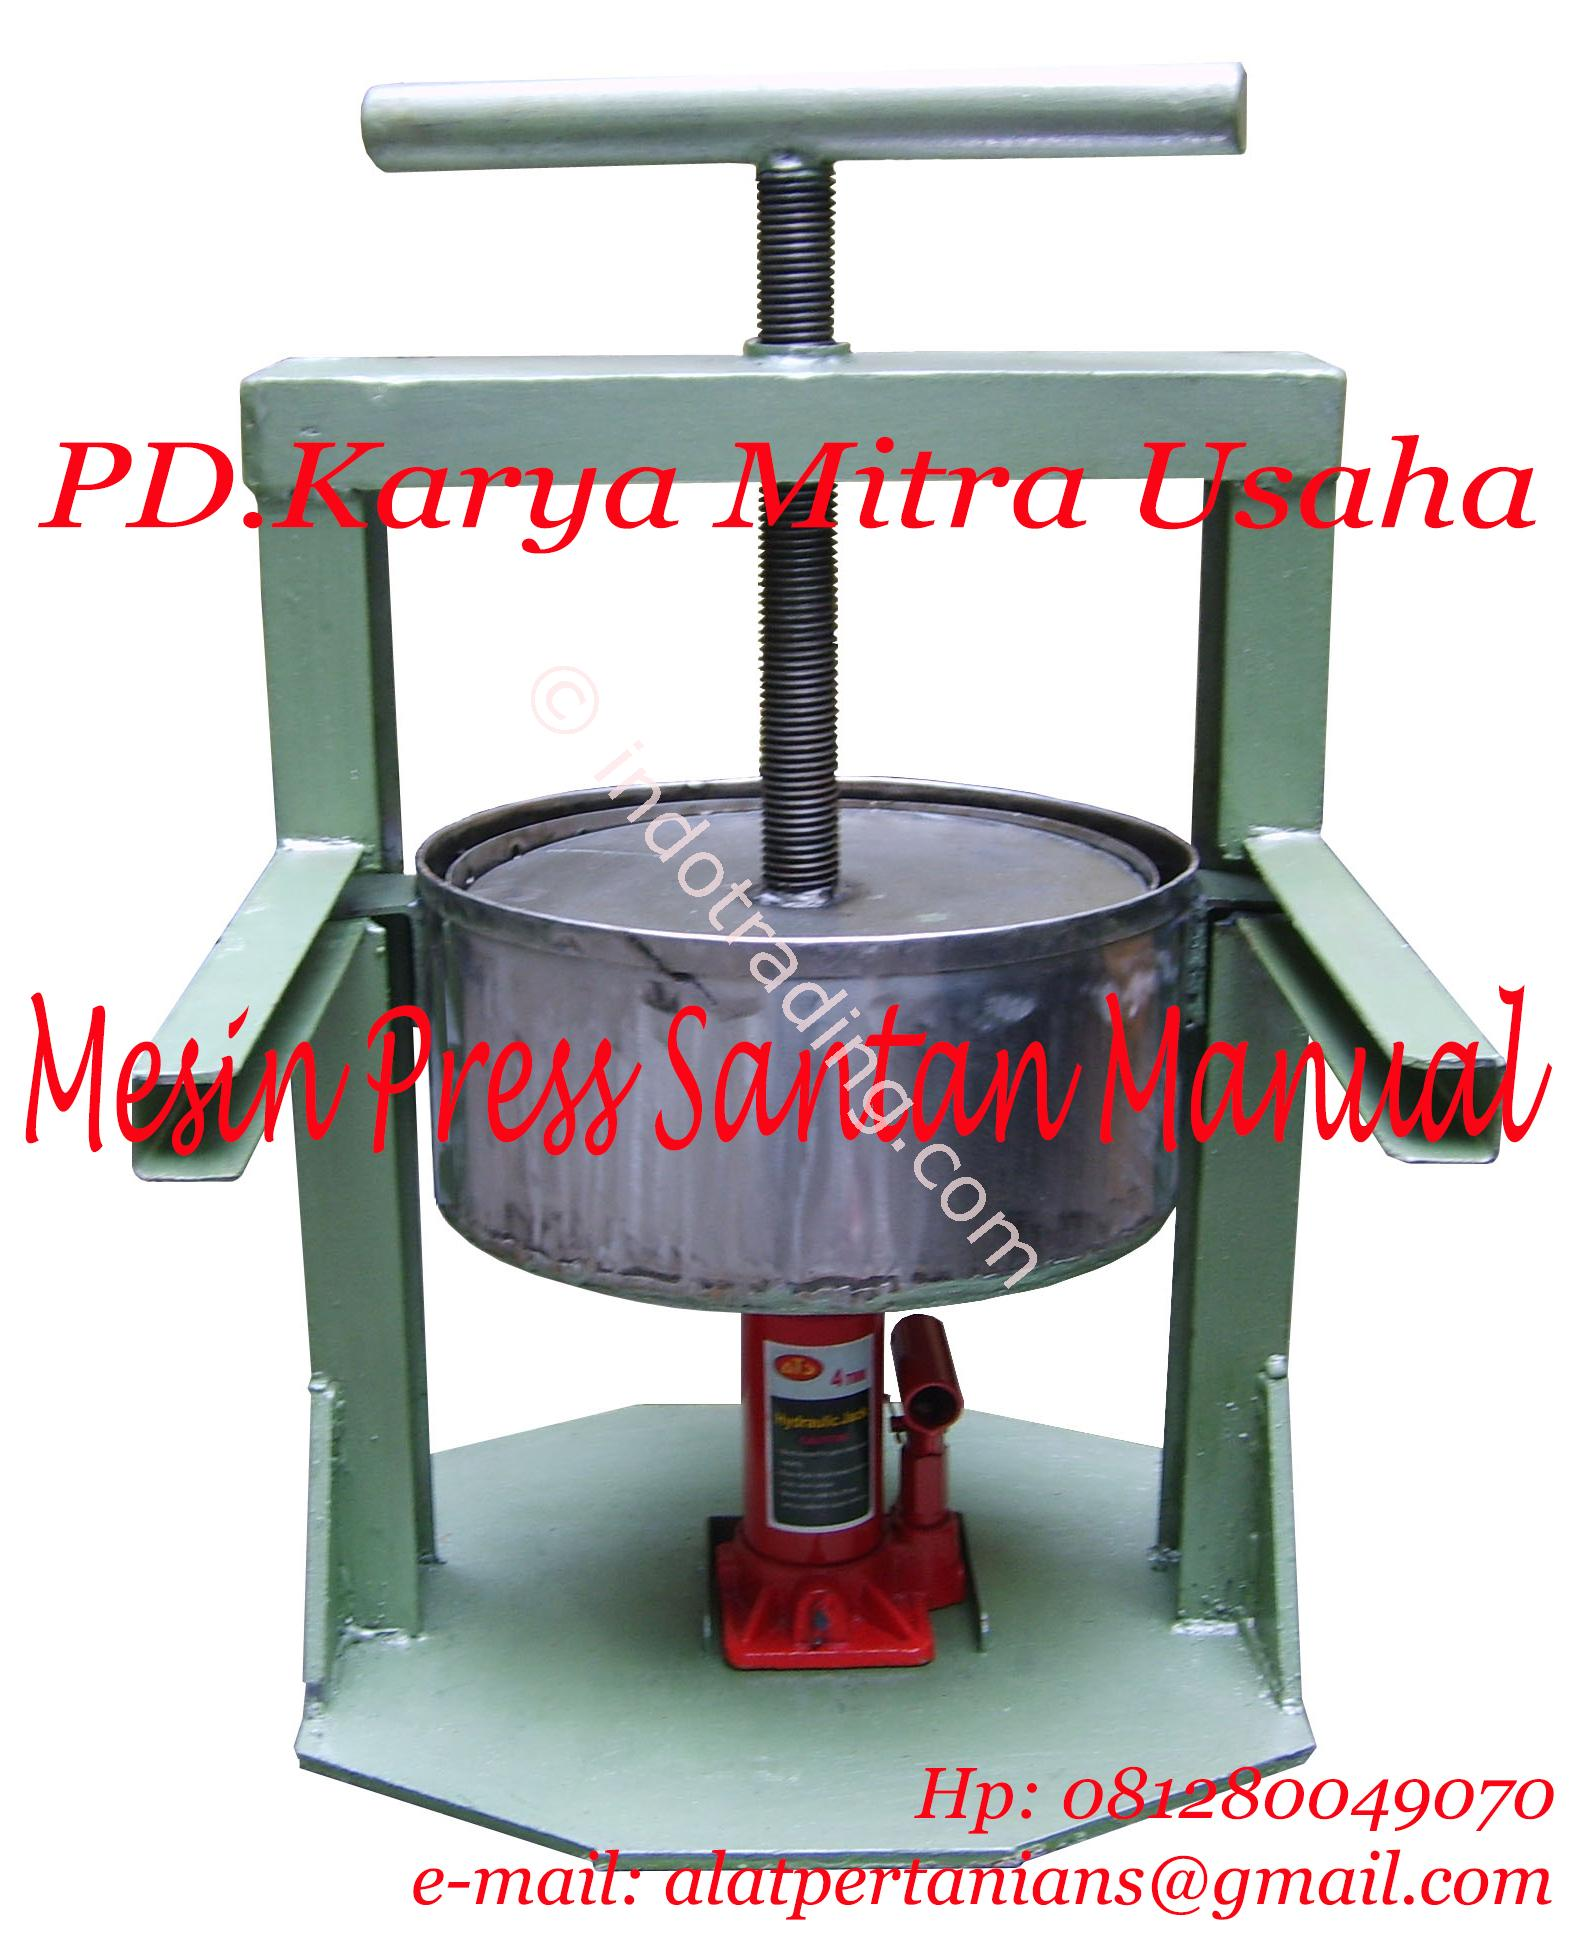 Sell Coconut Milk Press Machine Manual From Indonesia By